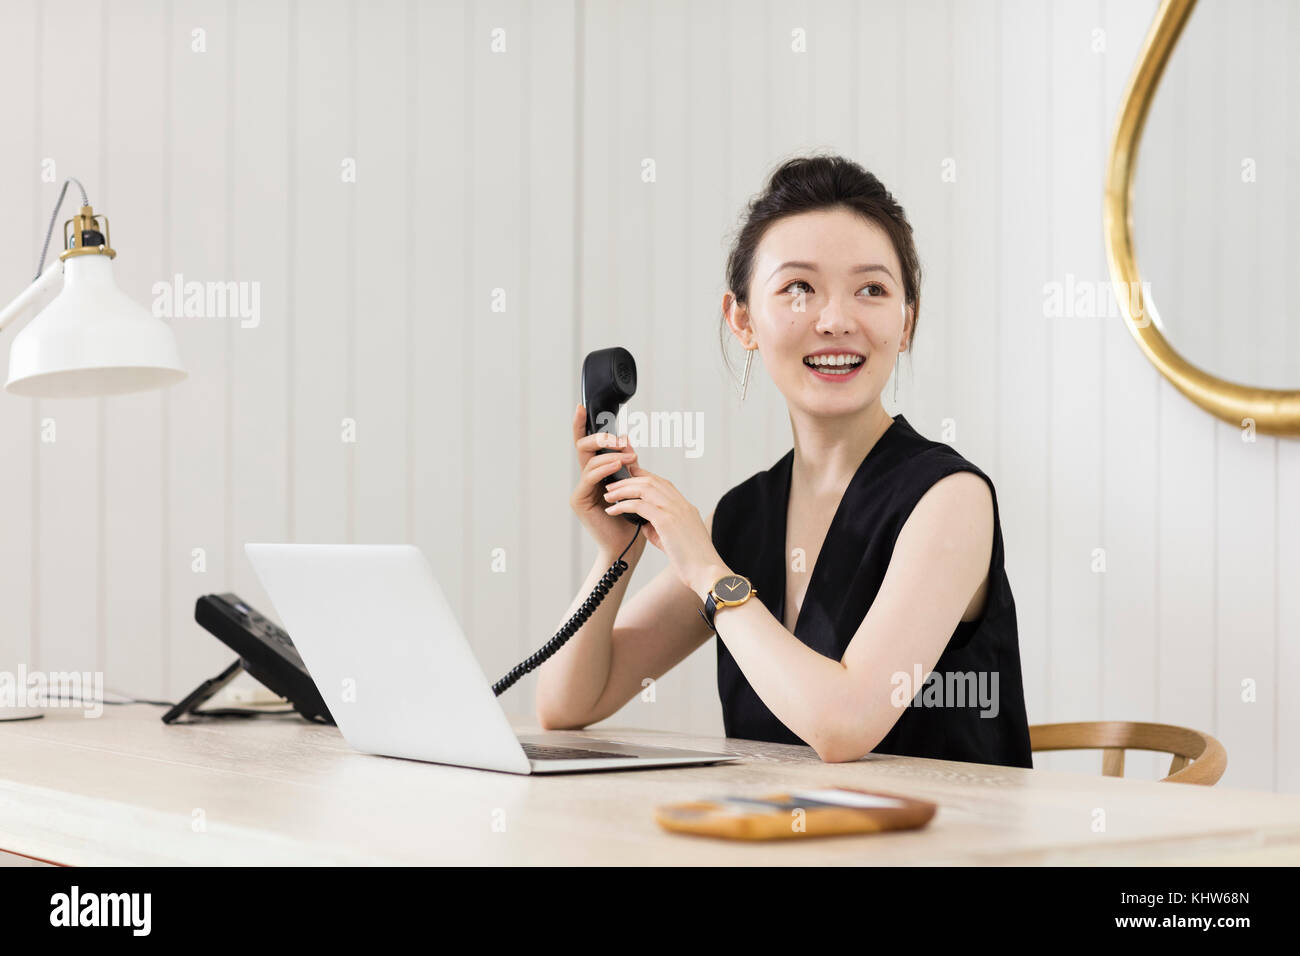 Young woman at desk with telephone handset - Stock Image